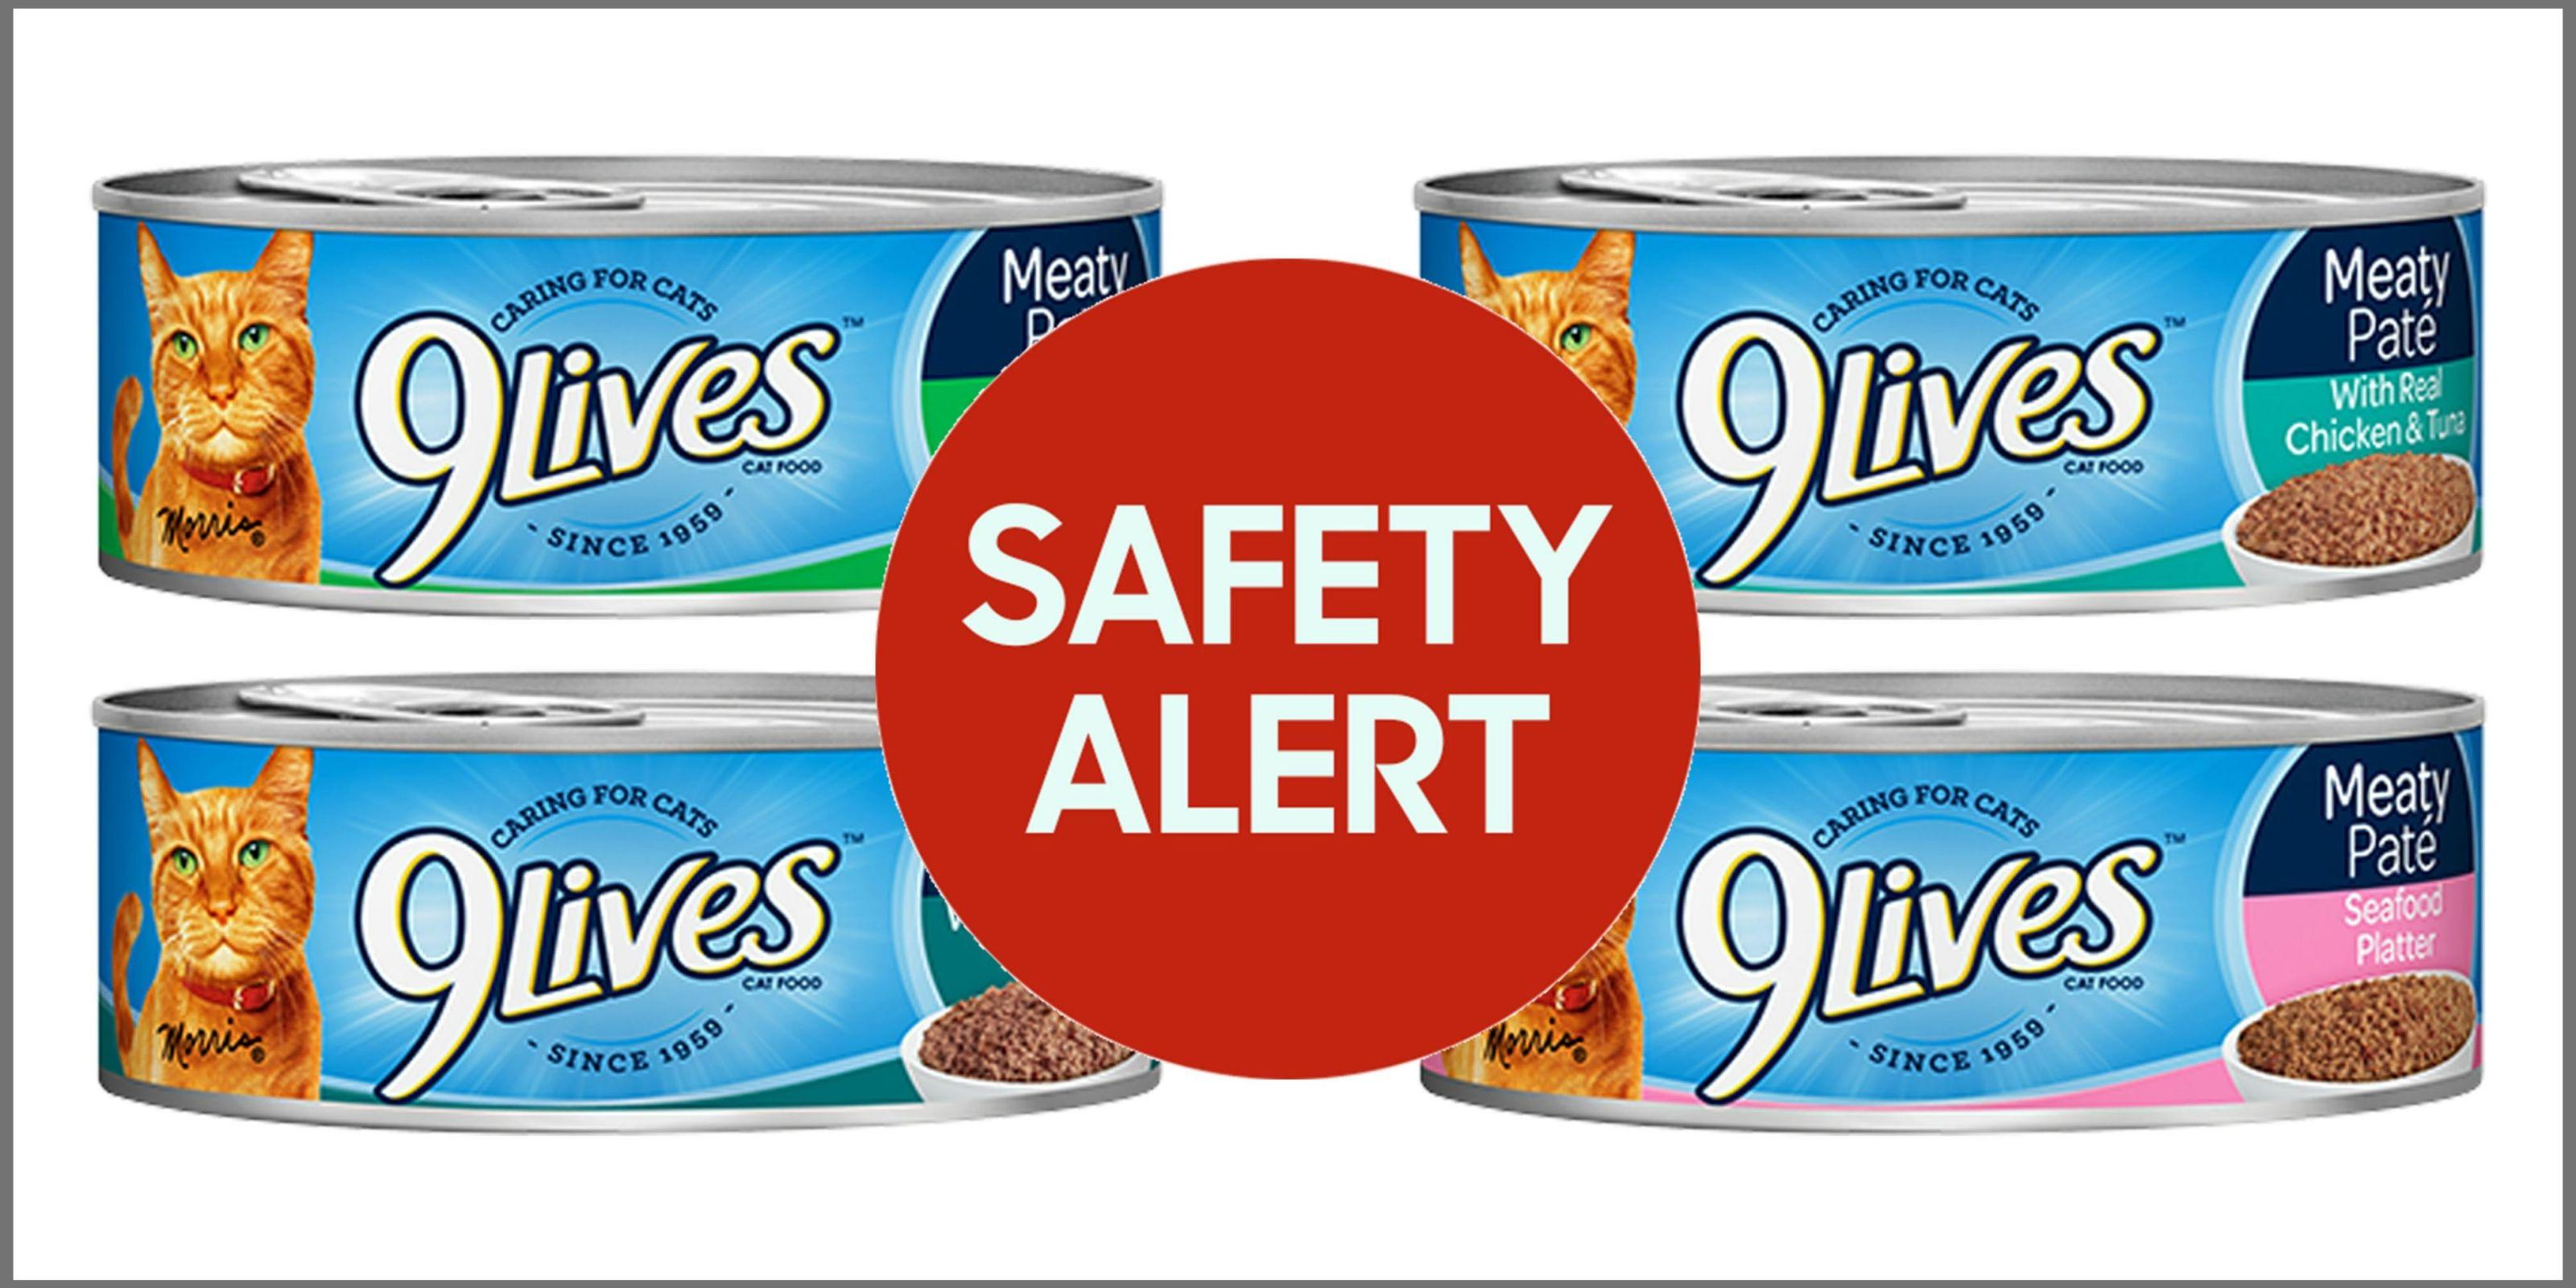 9lives Cat Food And Two Other Brands Recalled Due To